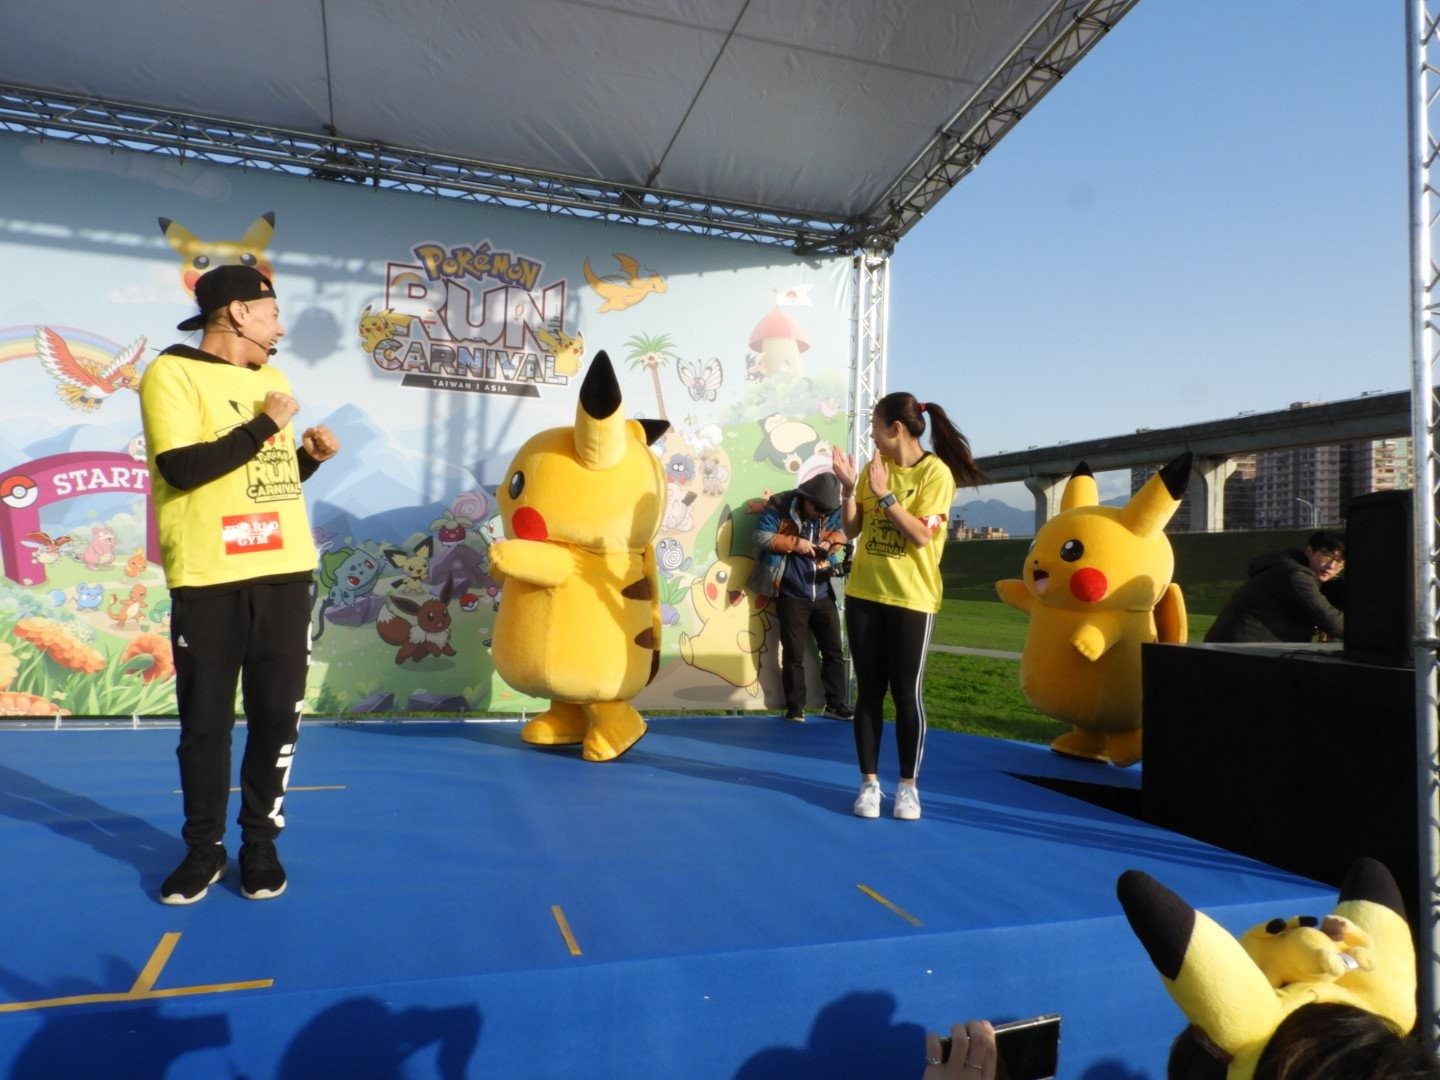 [Sad news] Pikachu, wwwwwwww that he 's going in Taiwan of events